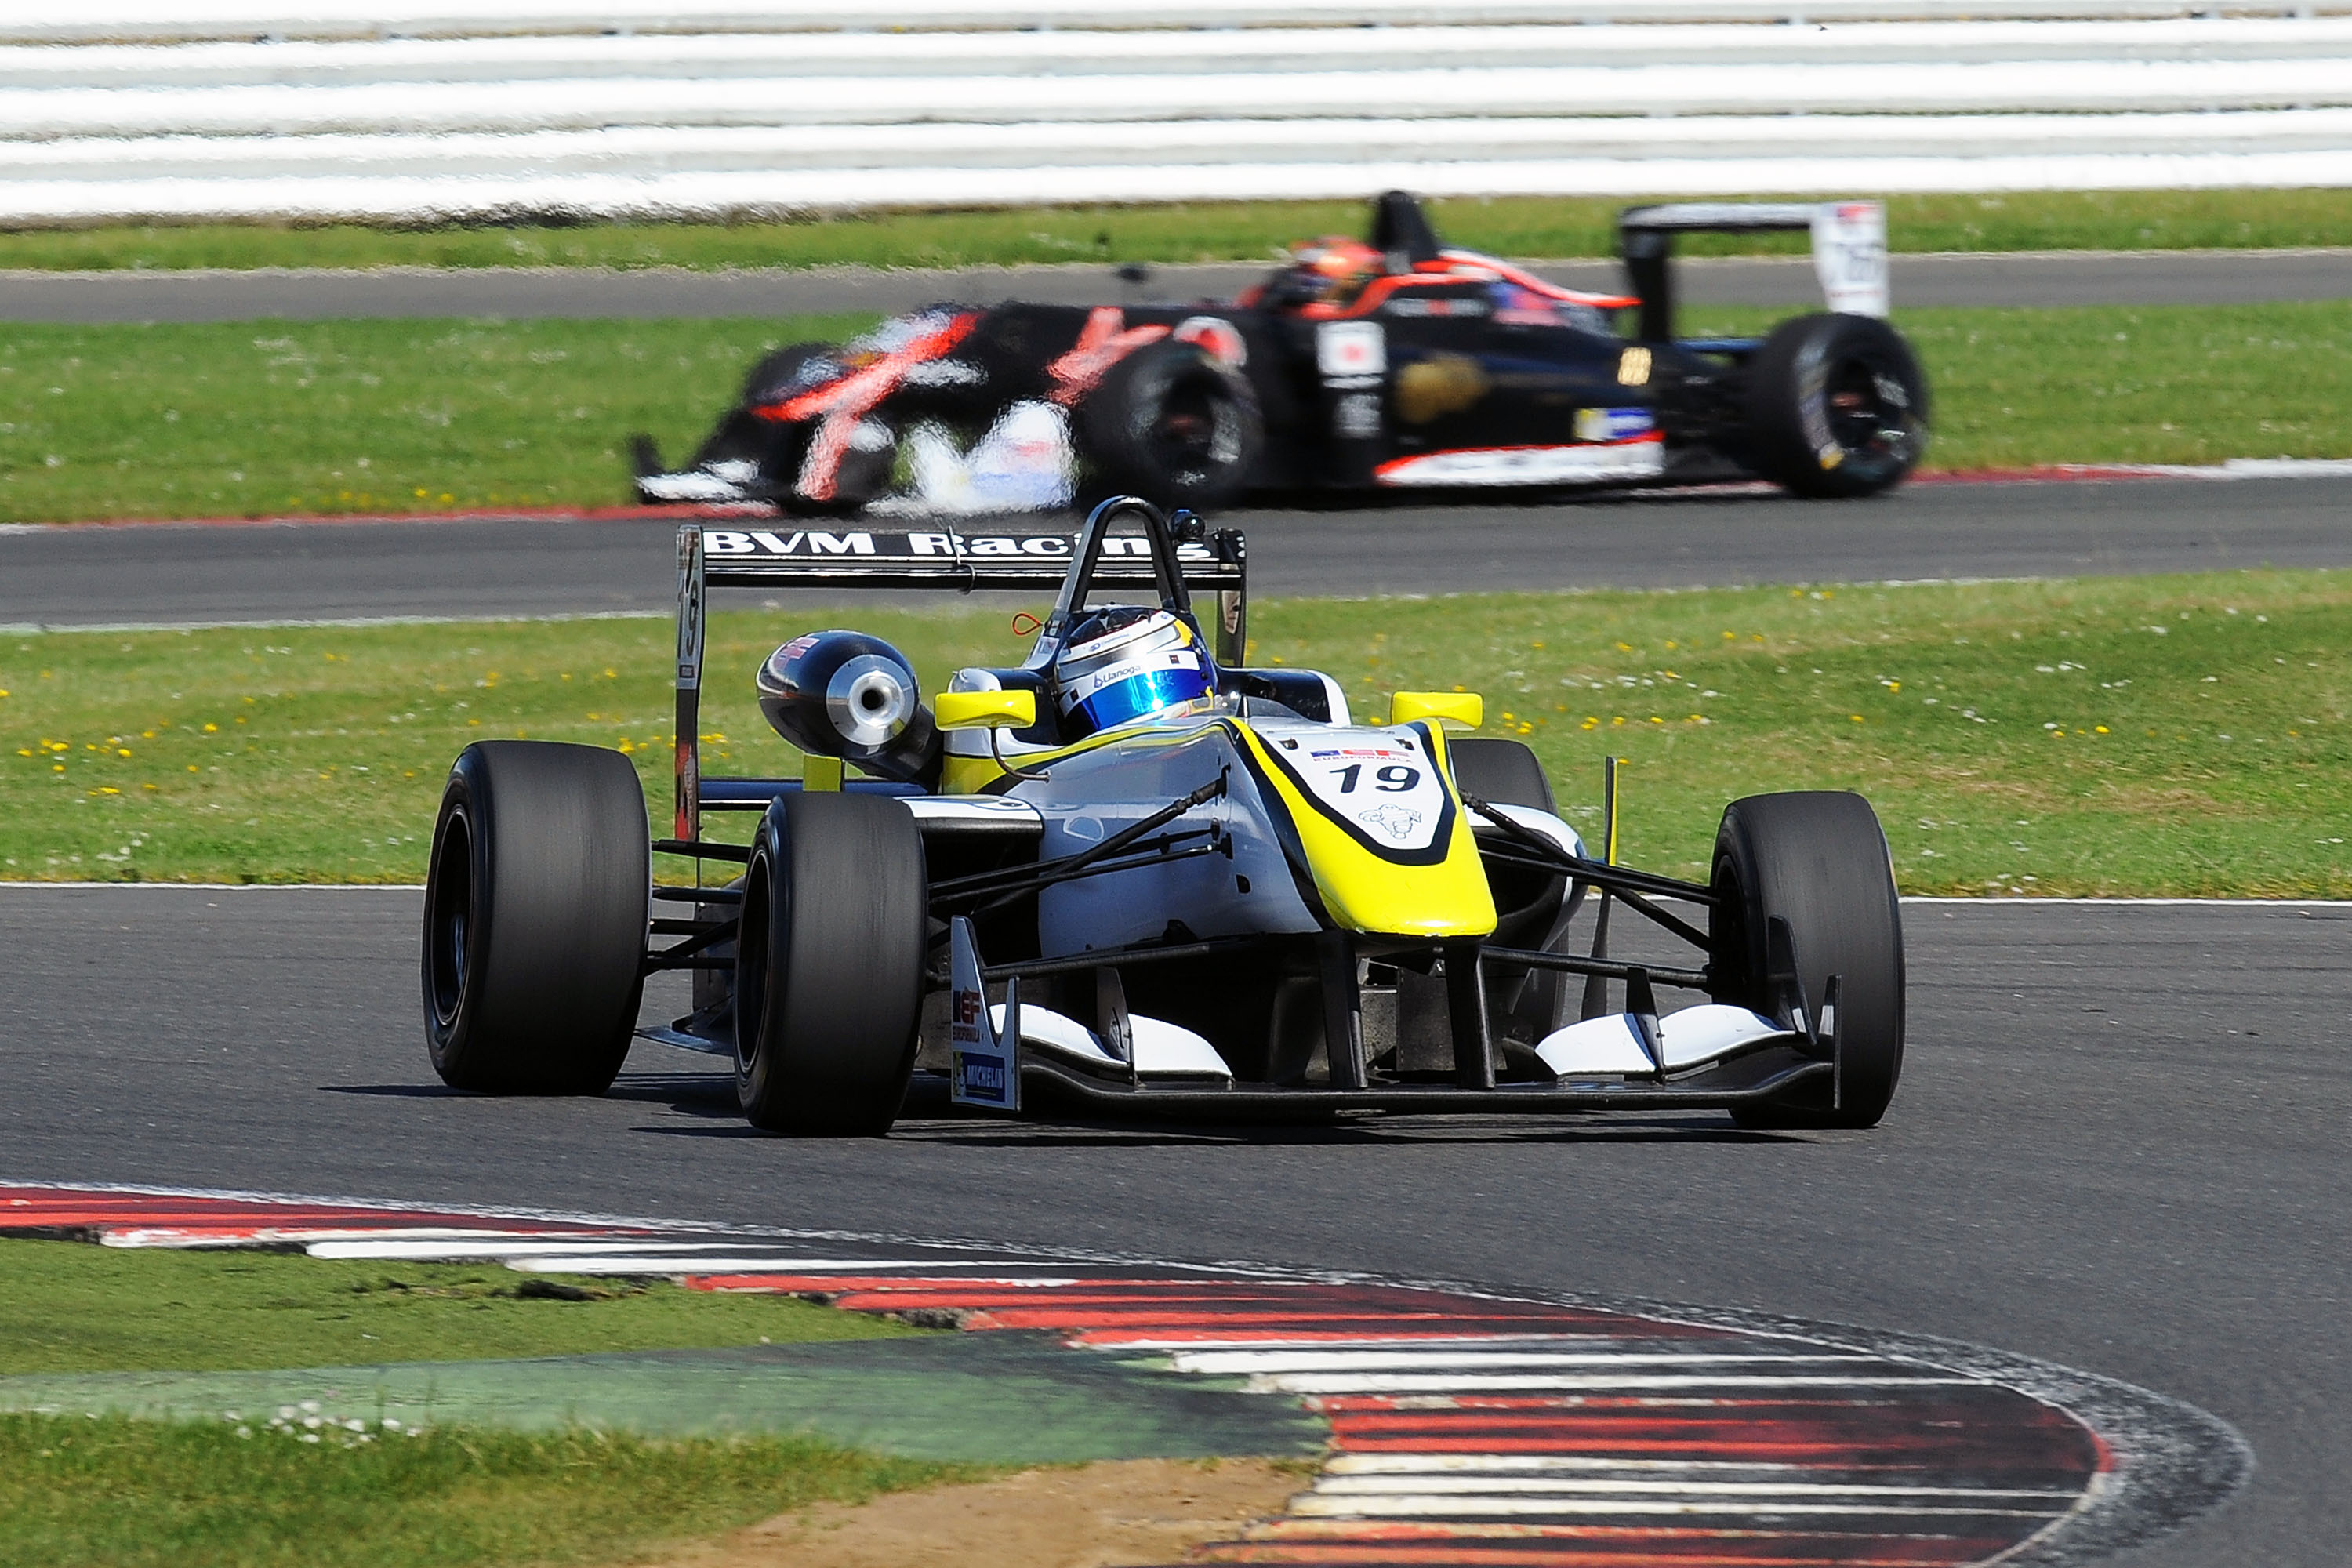 William_Barbosa_G_EuroformulaOpen_Práctica1Junio5_15_4.jpg